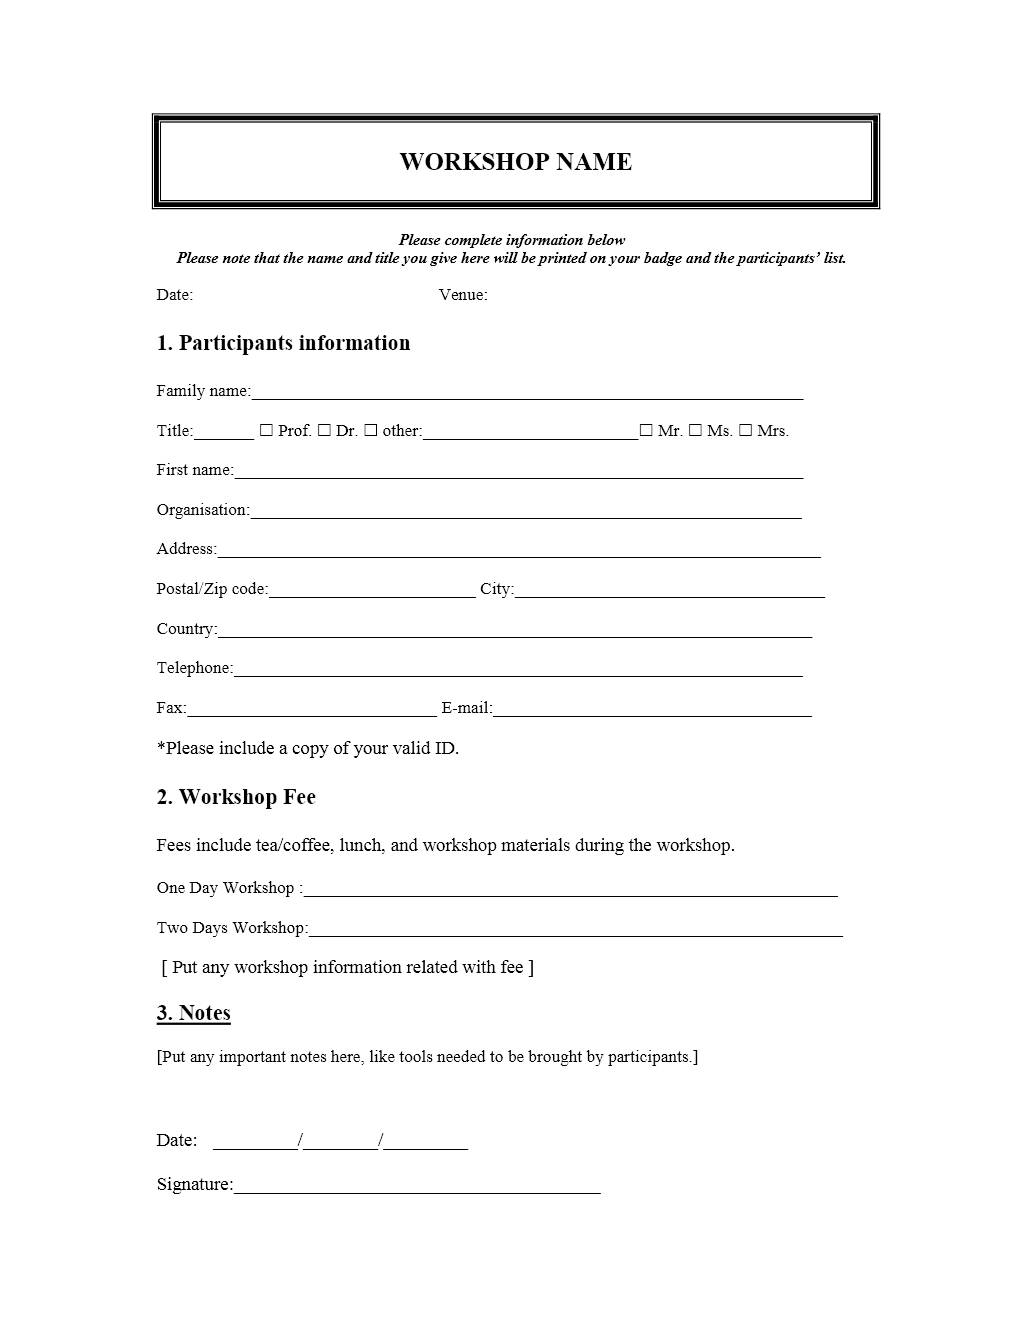 Workshop Registration Form Template Word